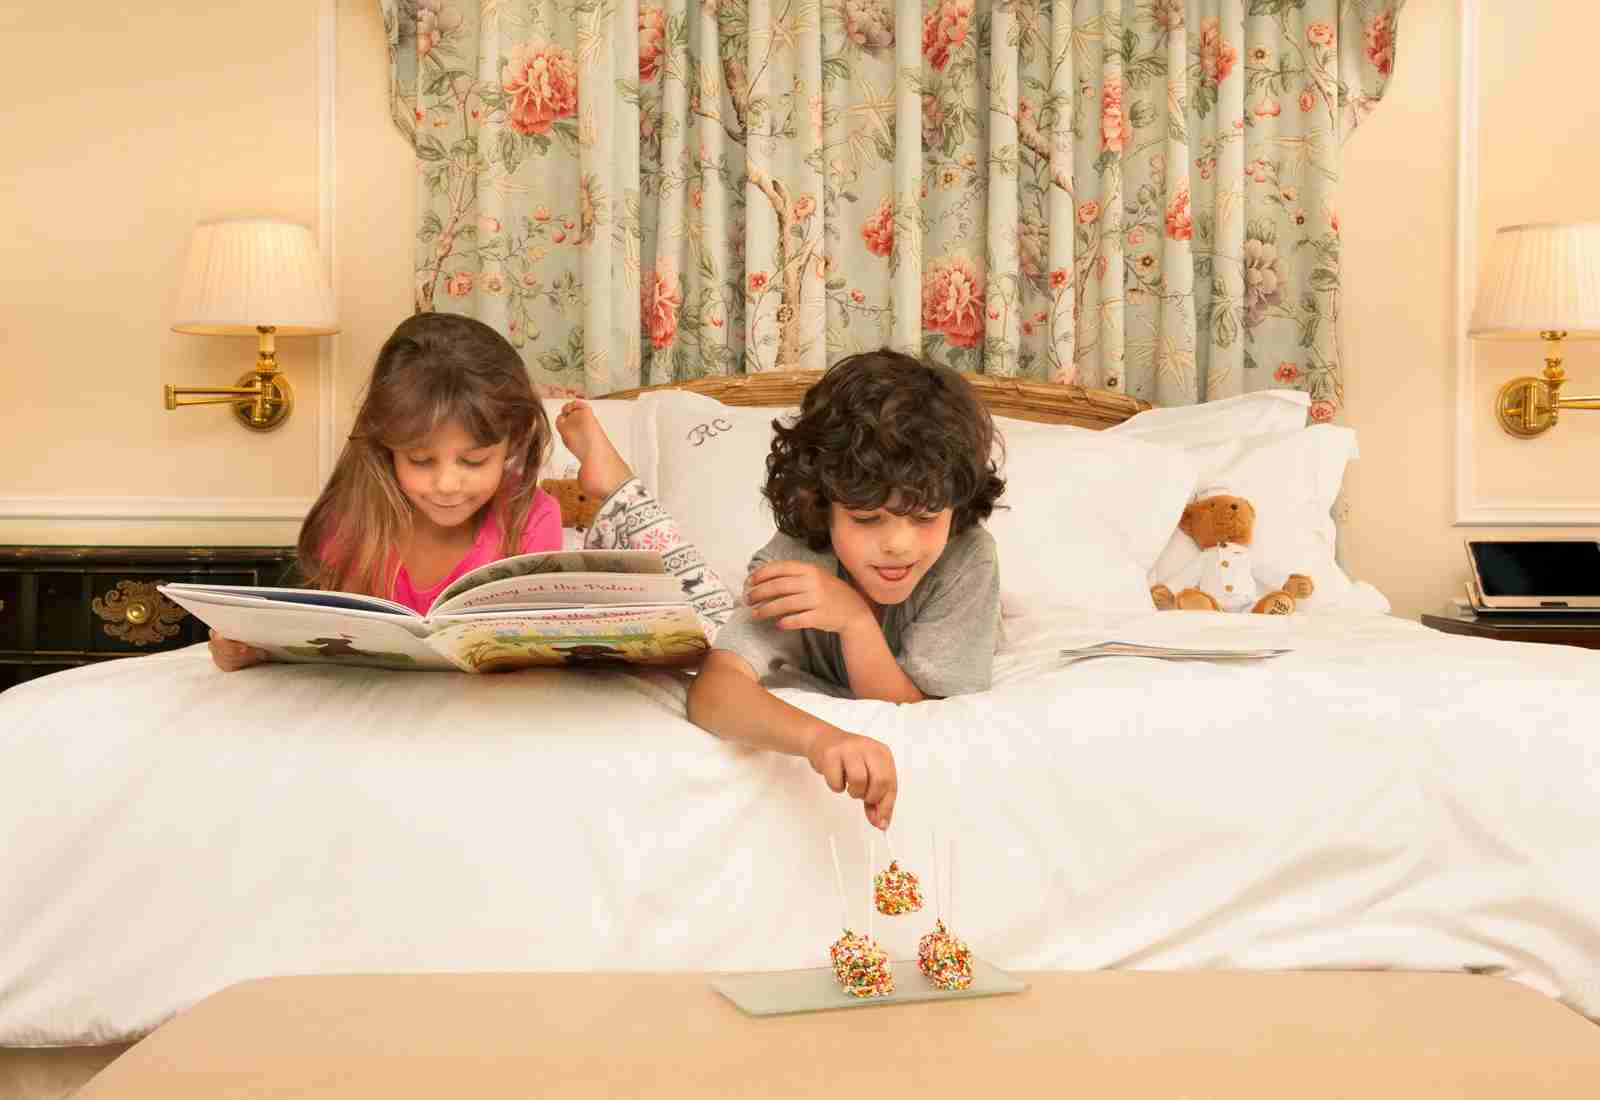 Hotels like the Peninsula Beverly Hills offer specialty childcare services. (Photo courtesy of Peninsula Hotel)